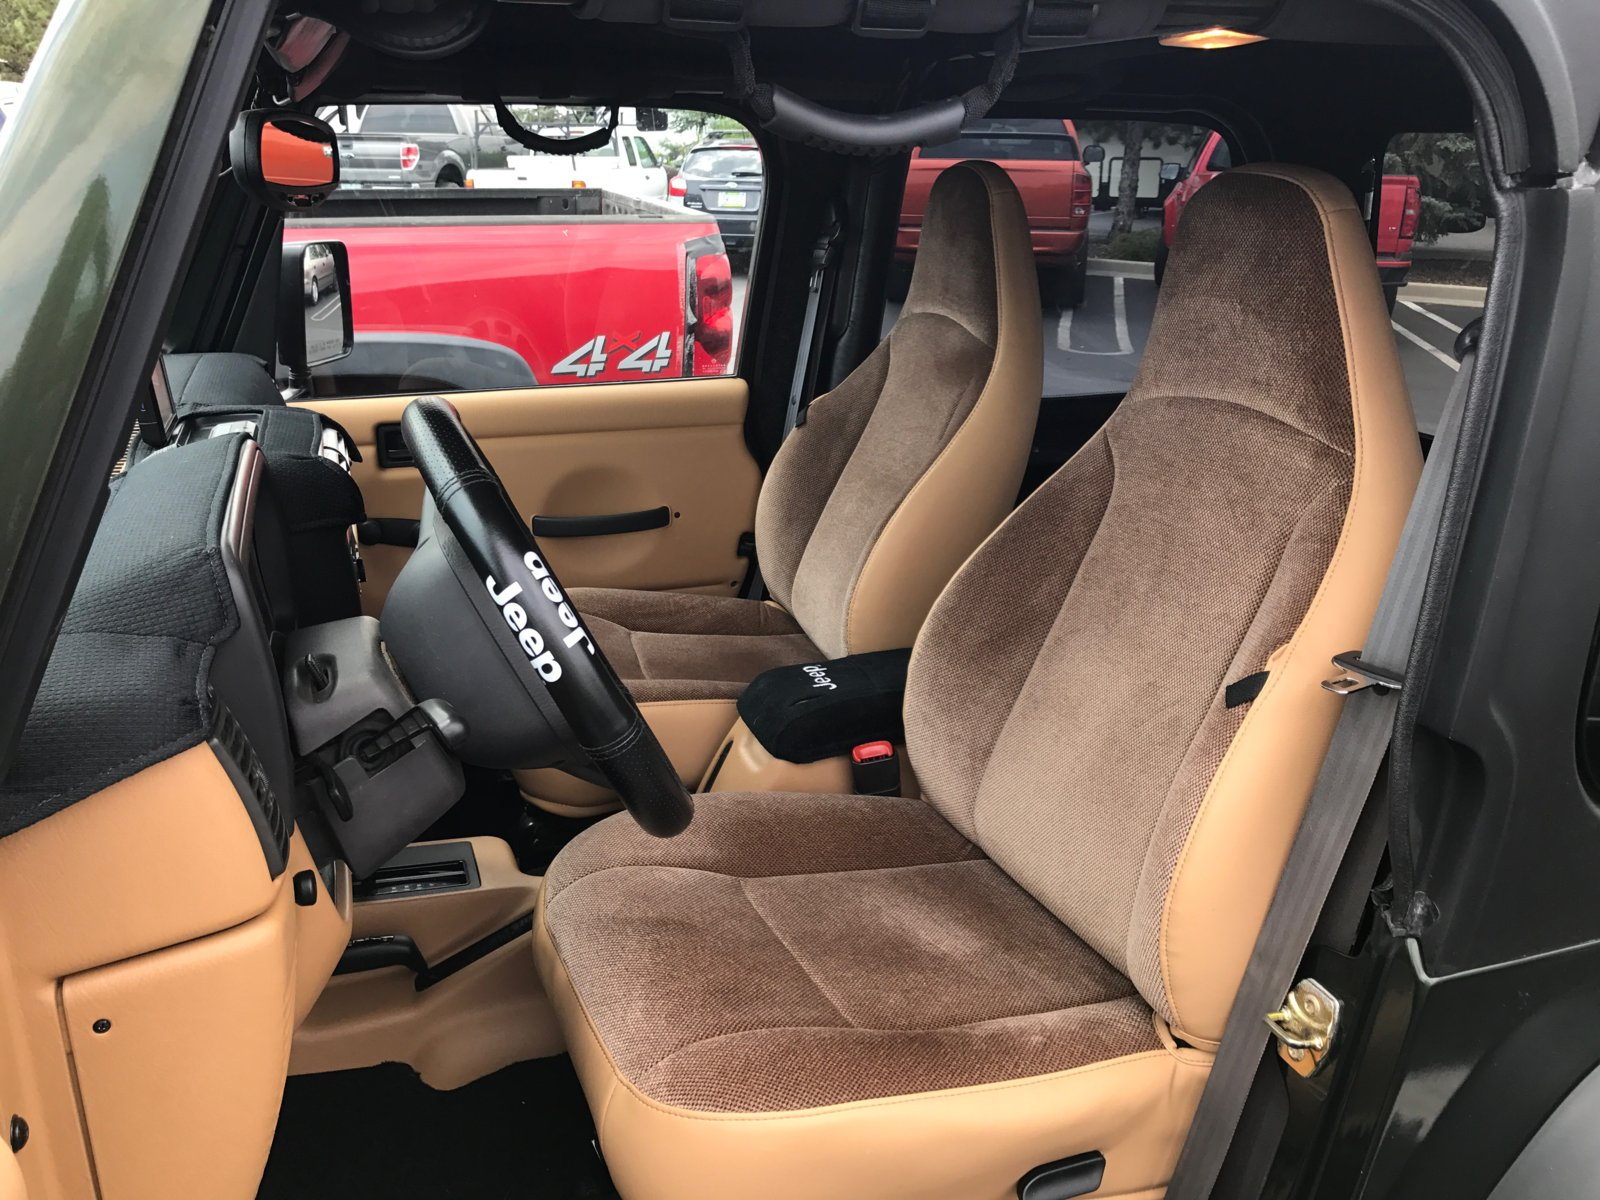 Seat Replacement | Jeep Wrangler TJ Forum